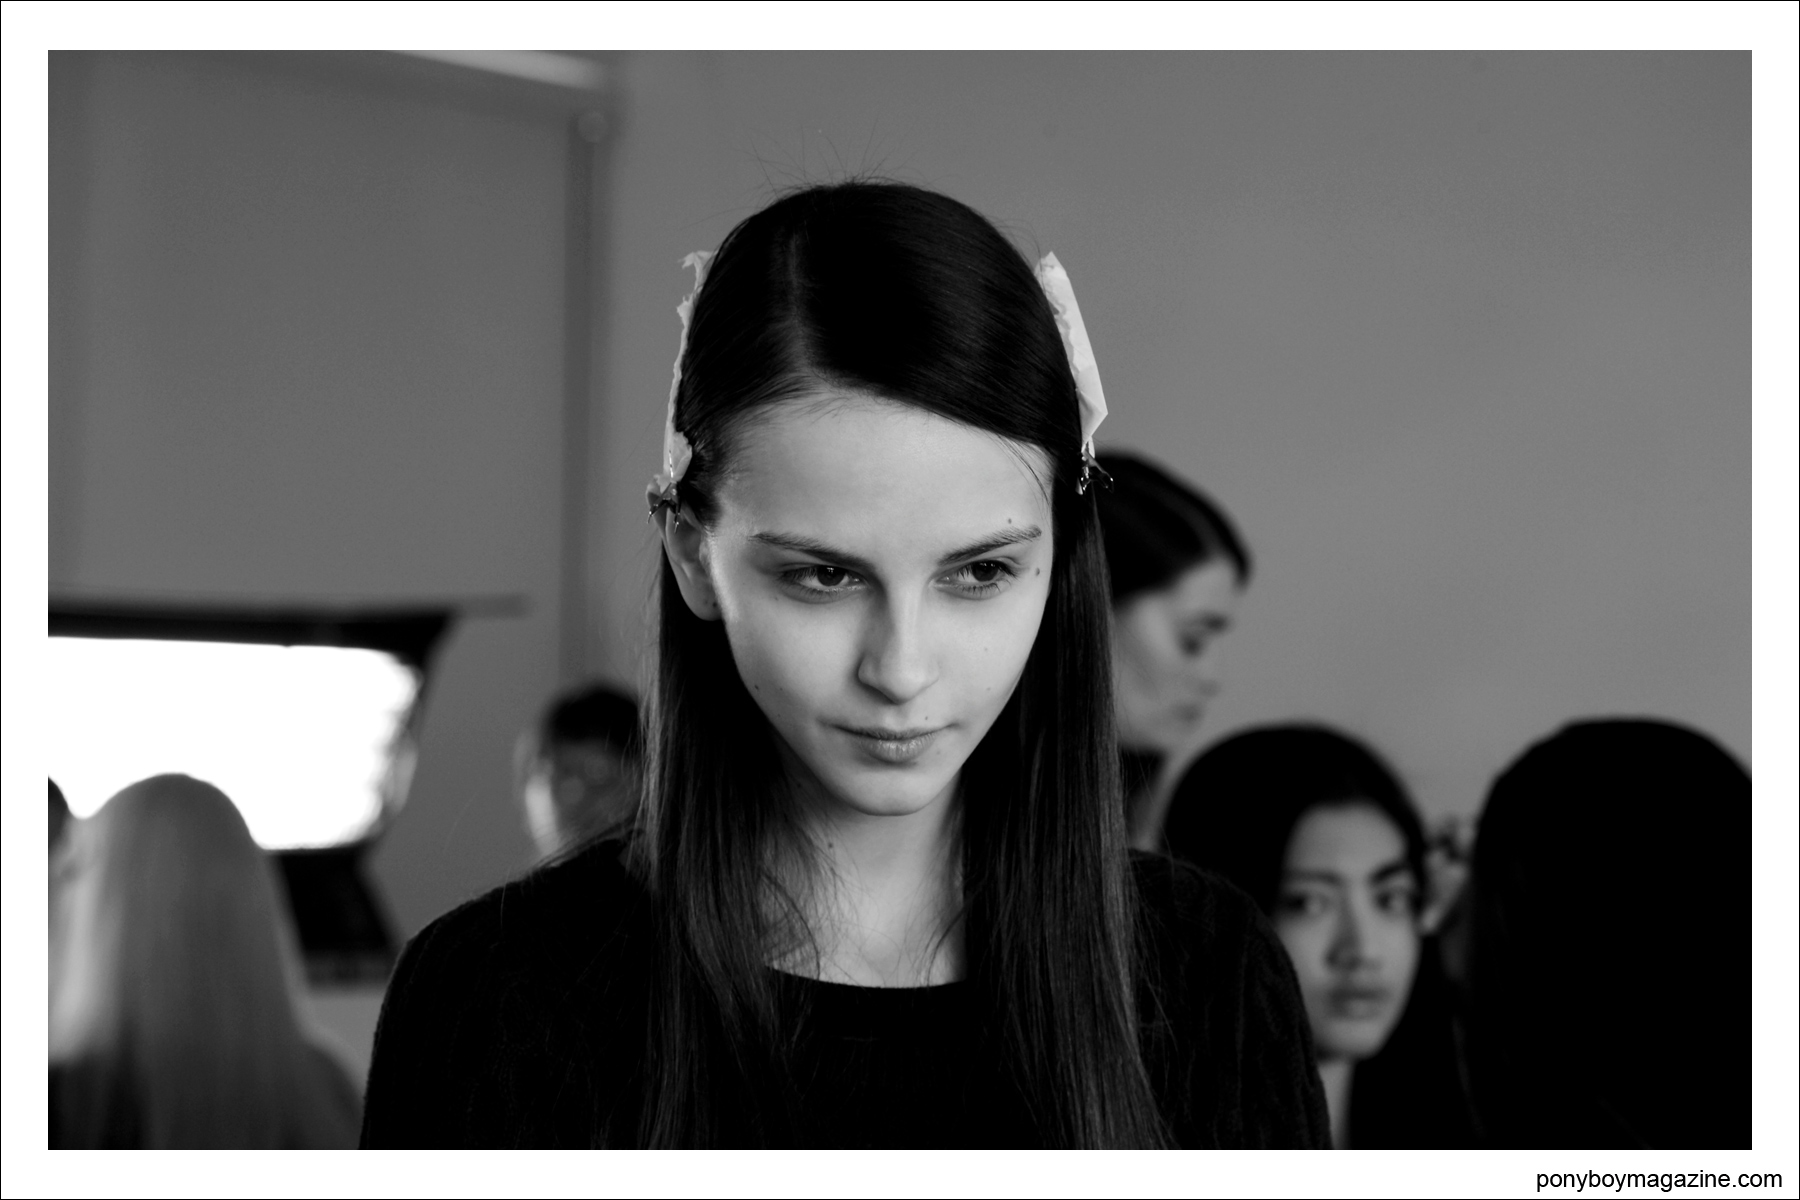 A model smiles backstage at Timo Weiland A/W 2014 fashion show, photographed by New York City photographer Alexander Thompson for Ponyboy Magazine.